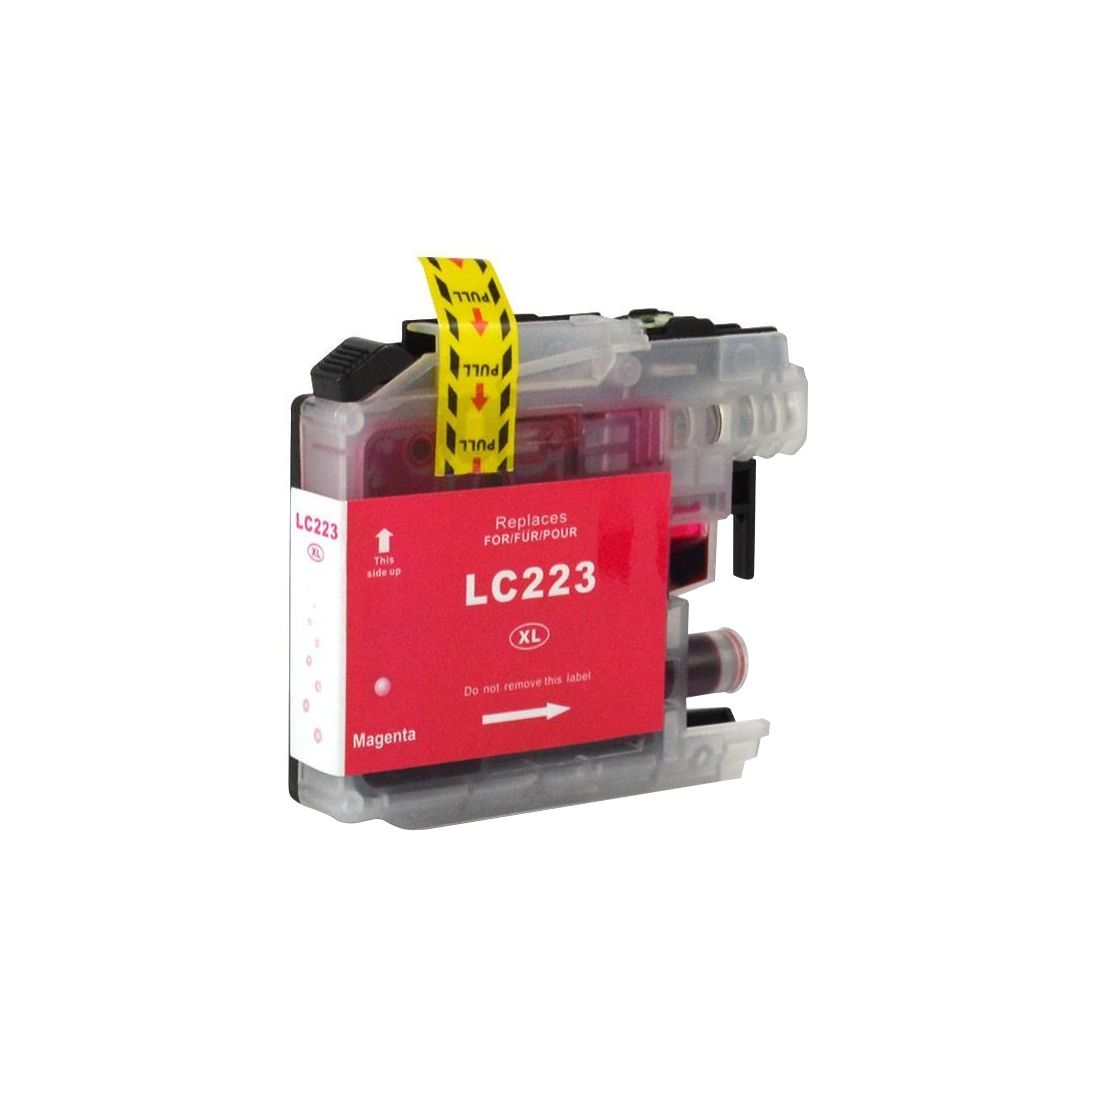 Brother LC223 Magneta Ink Cartridge Compatible LC223M Inkjet Printer Cartridge